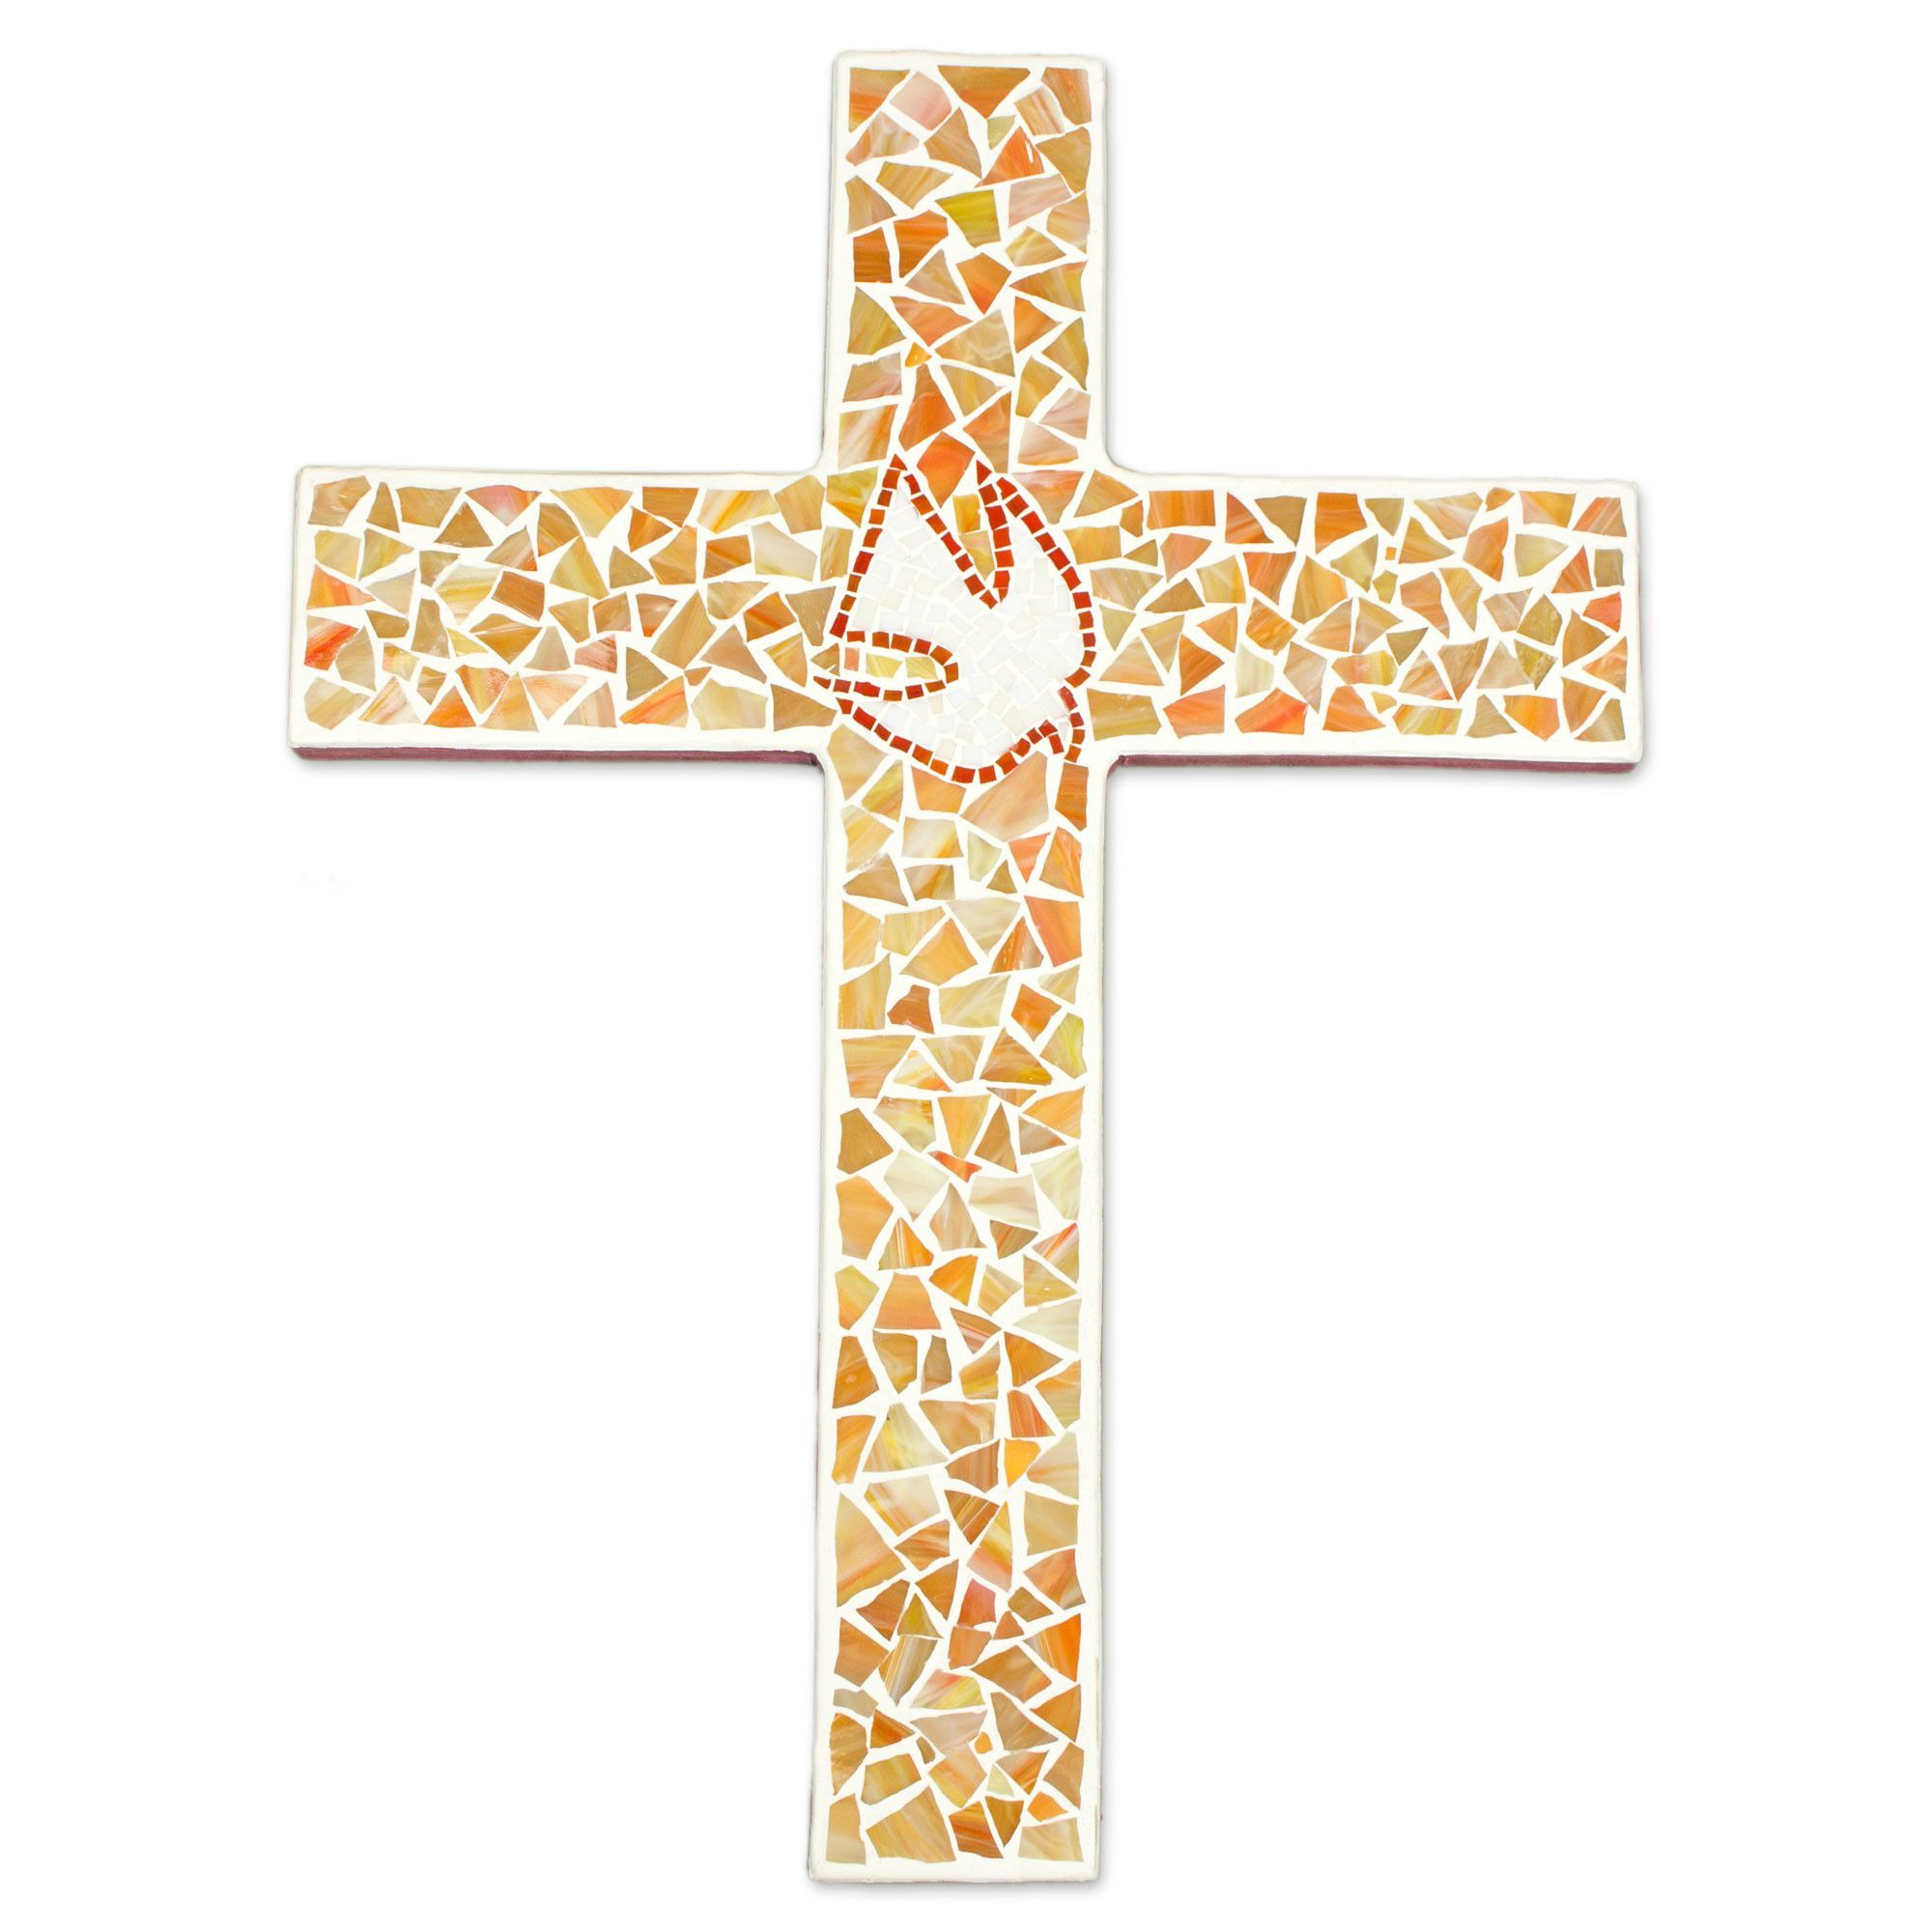 Wonderful Cross Collage Wall Decor Images - The Wall Art Decorations ...